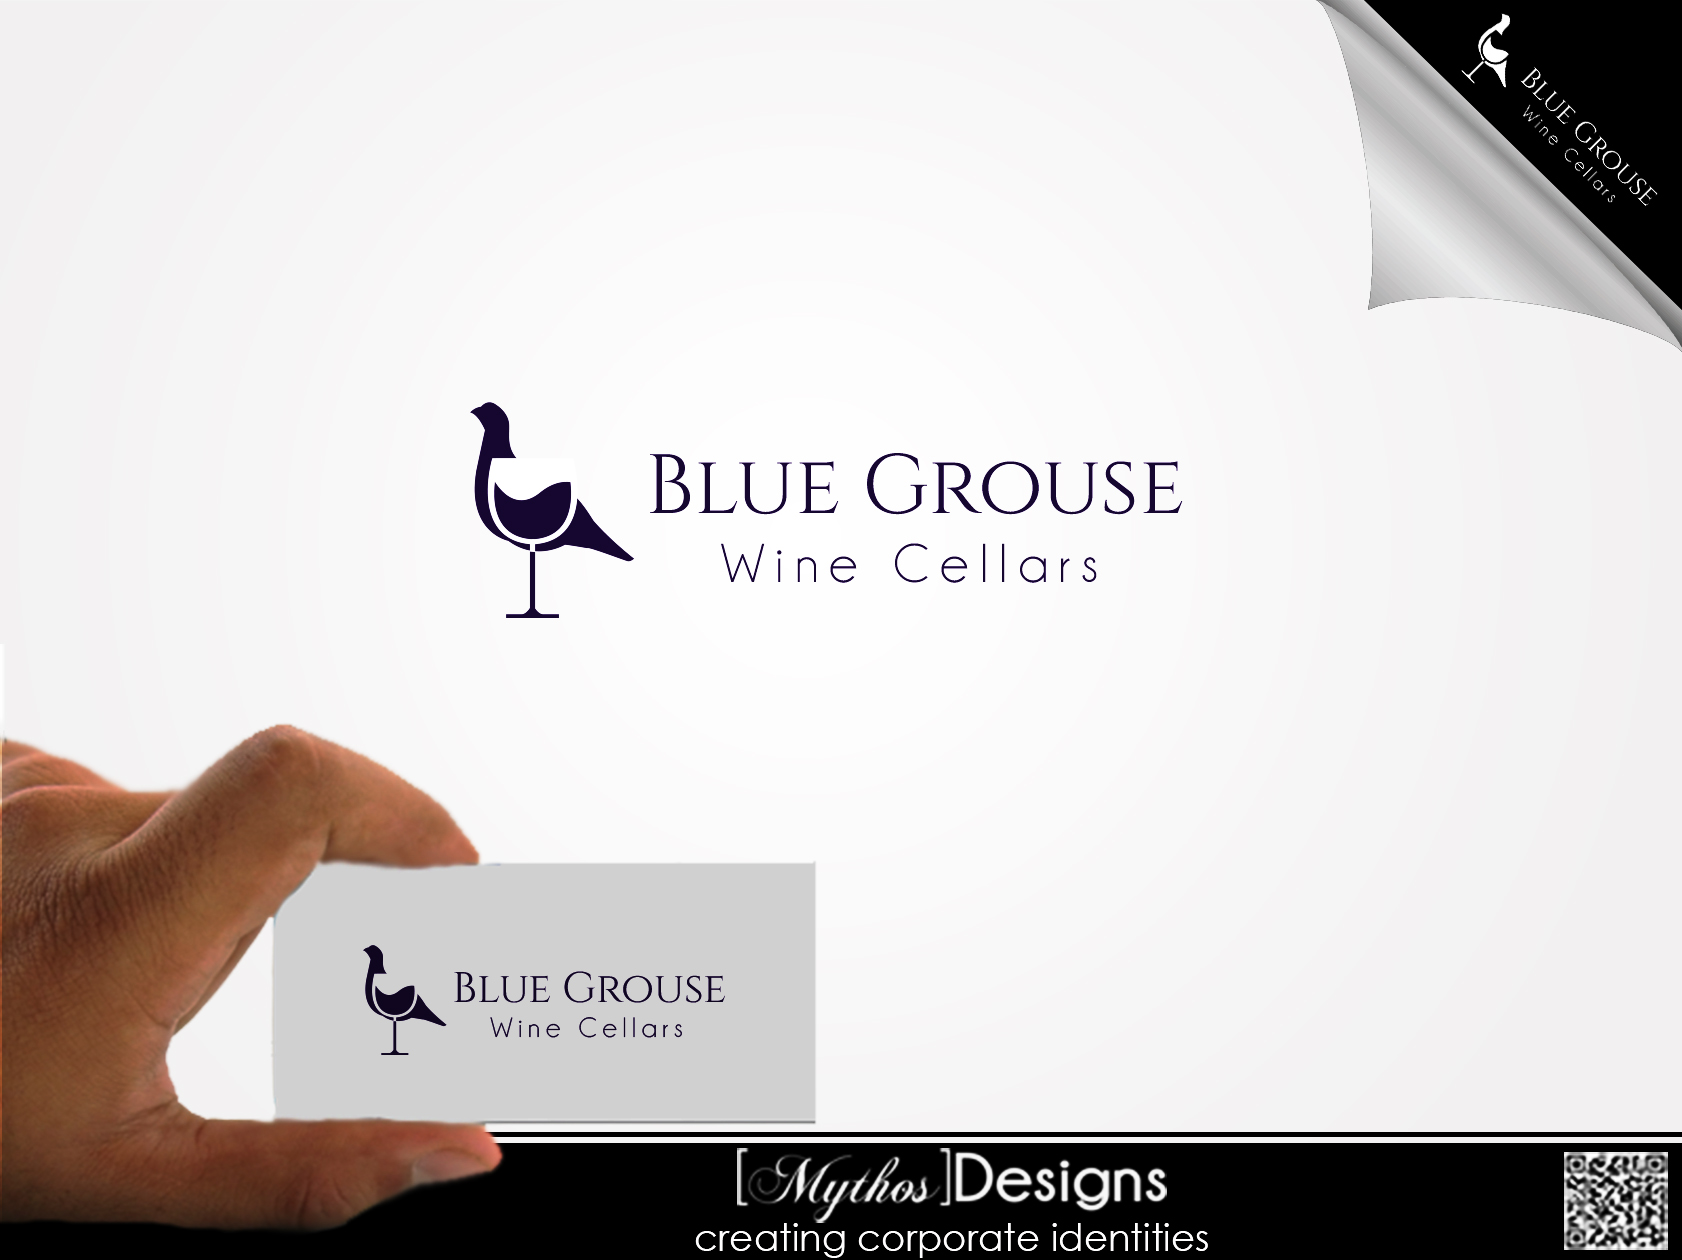 Logo Design by Mythos Designs - Entry No. 37 in the Logo Design Contest Creative Logo Design for Blue Grouse Wine Cellars.